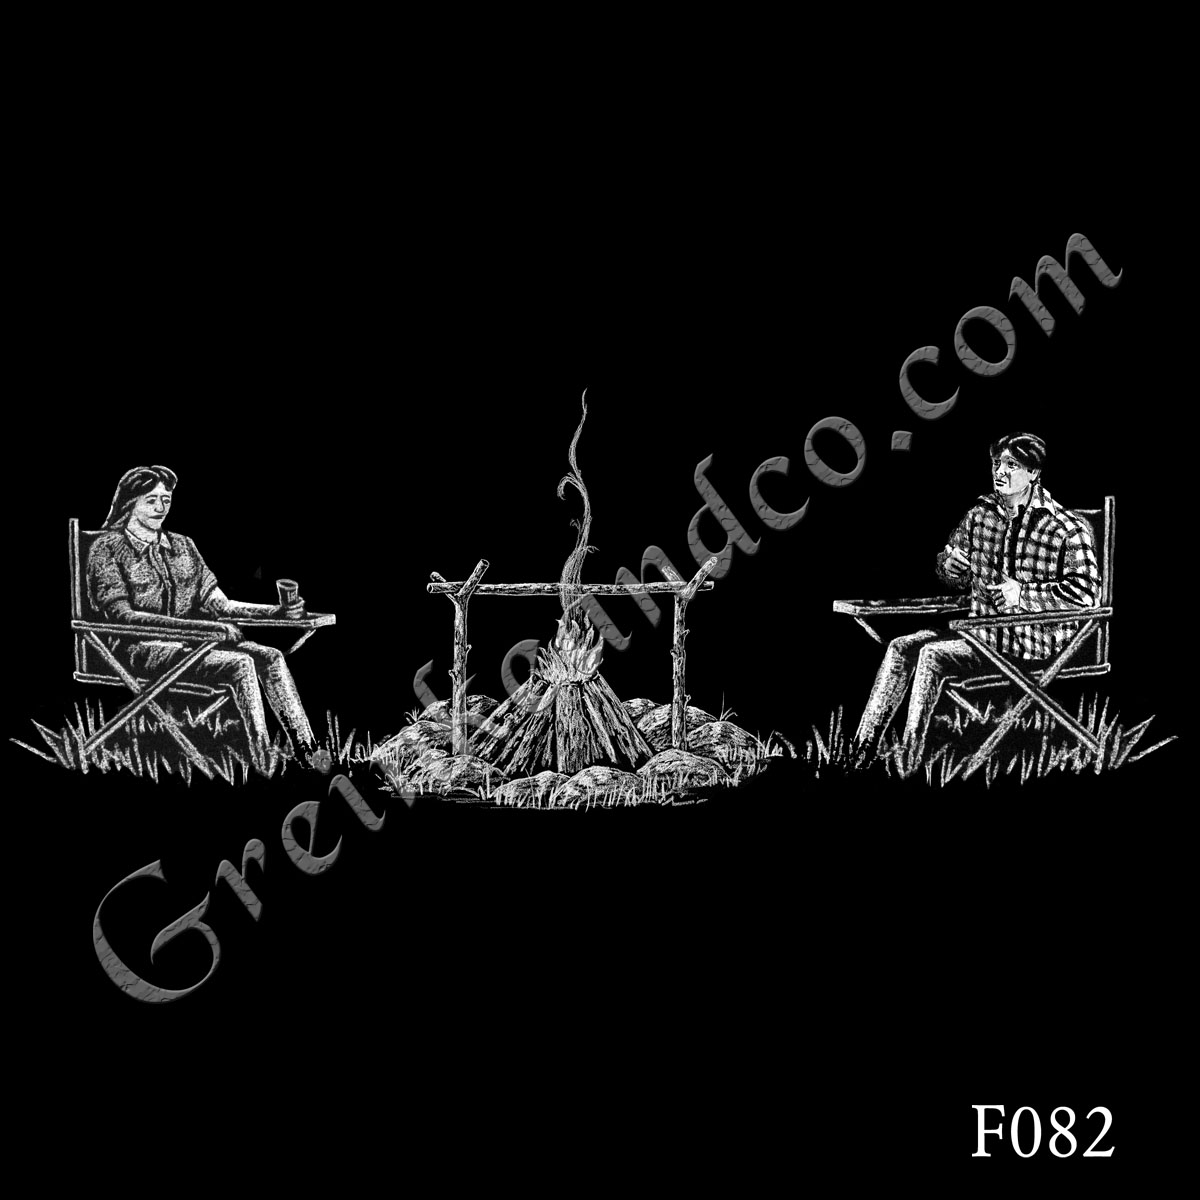 F082 - Camping Couple